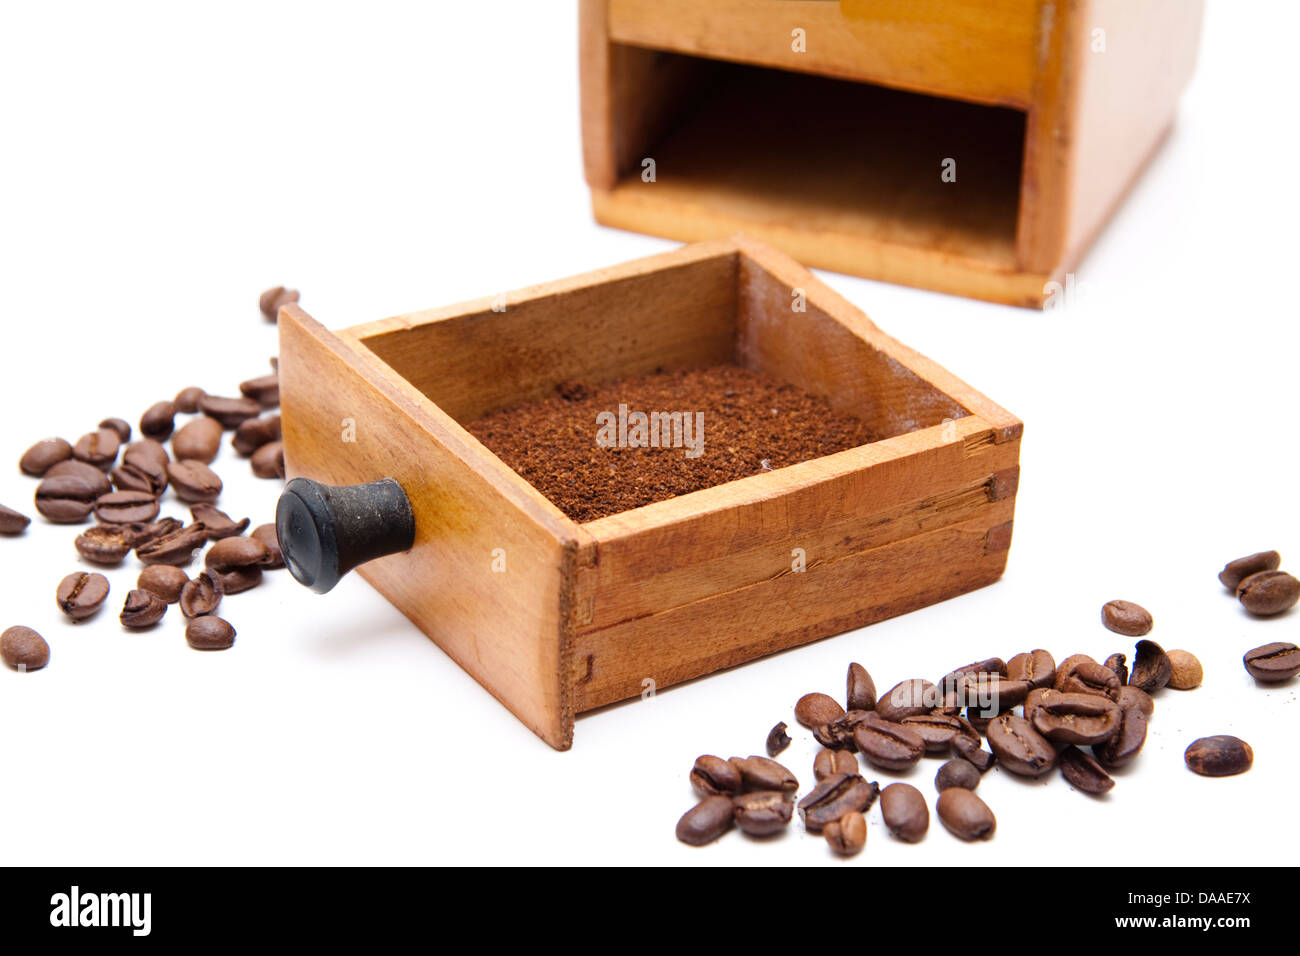 Old coffee mill with coffee beans - Stock Image